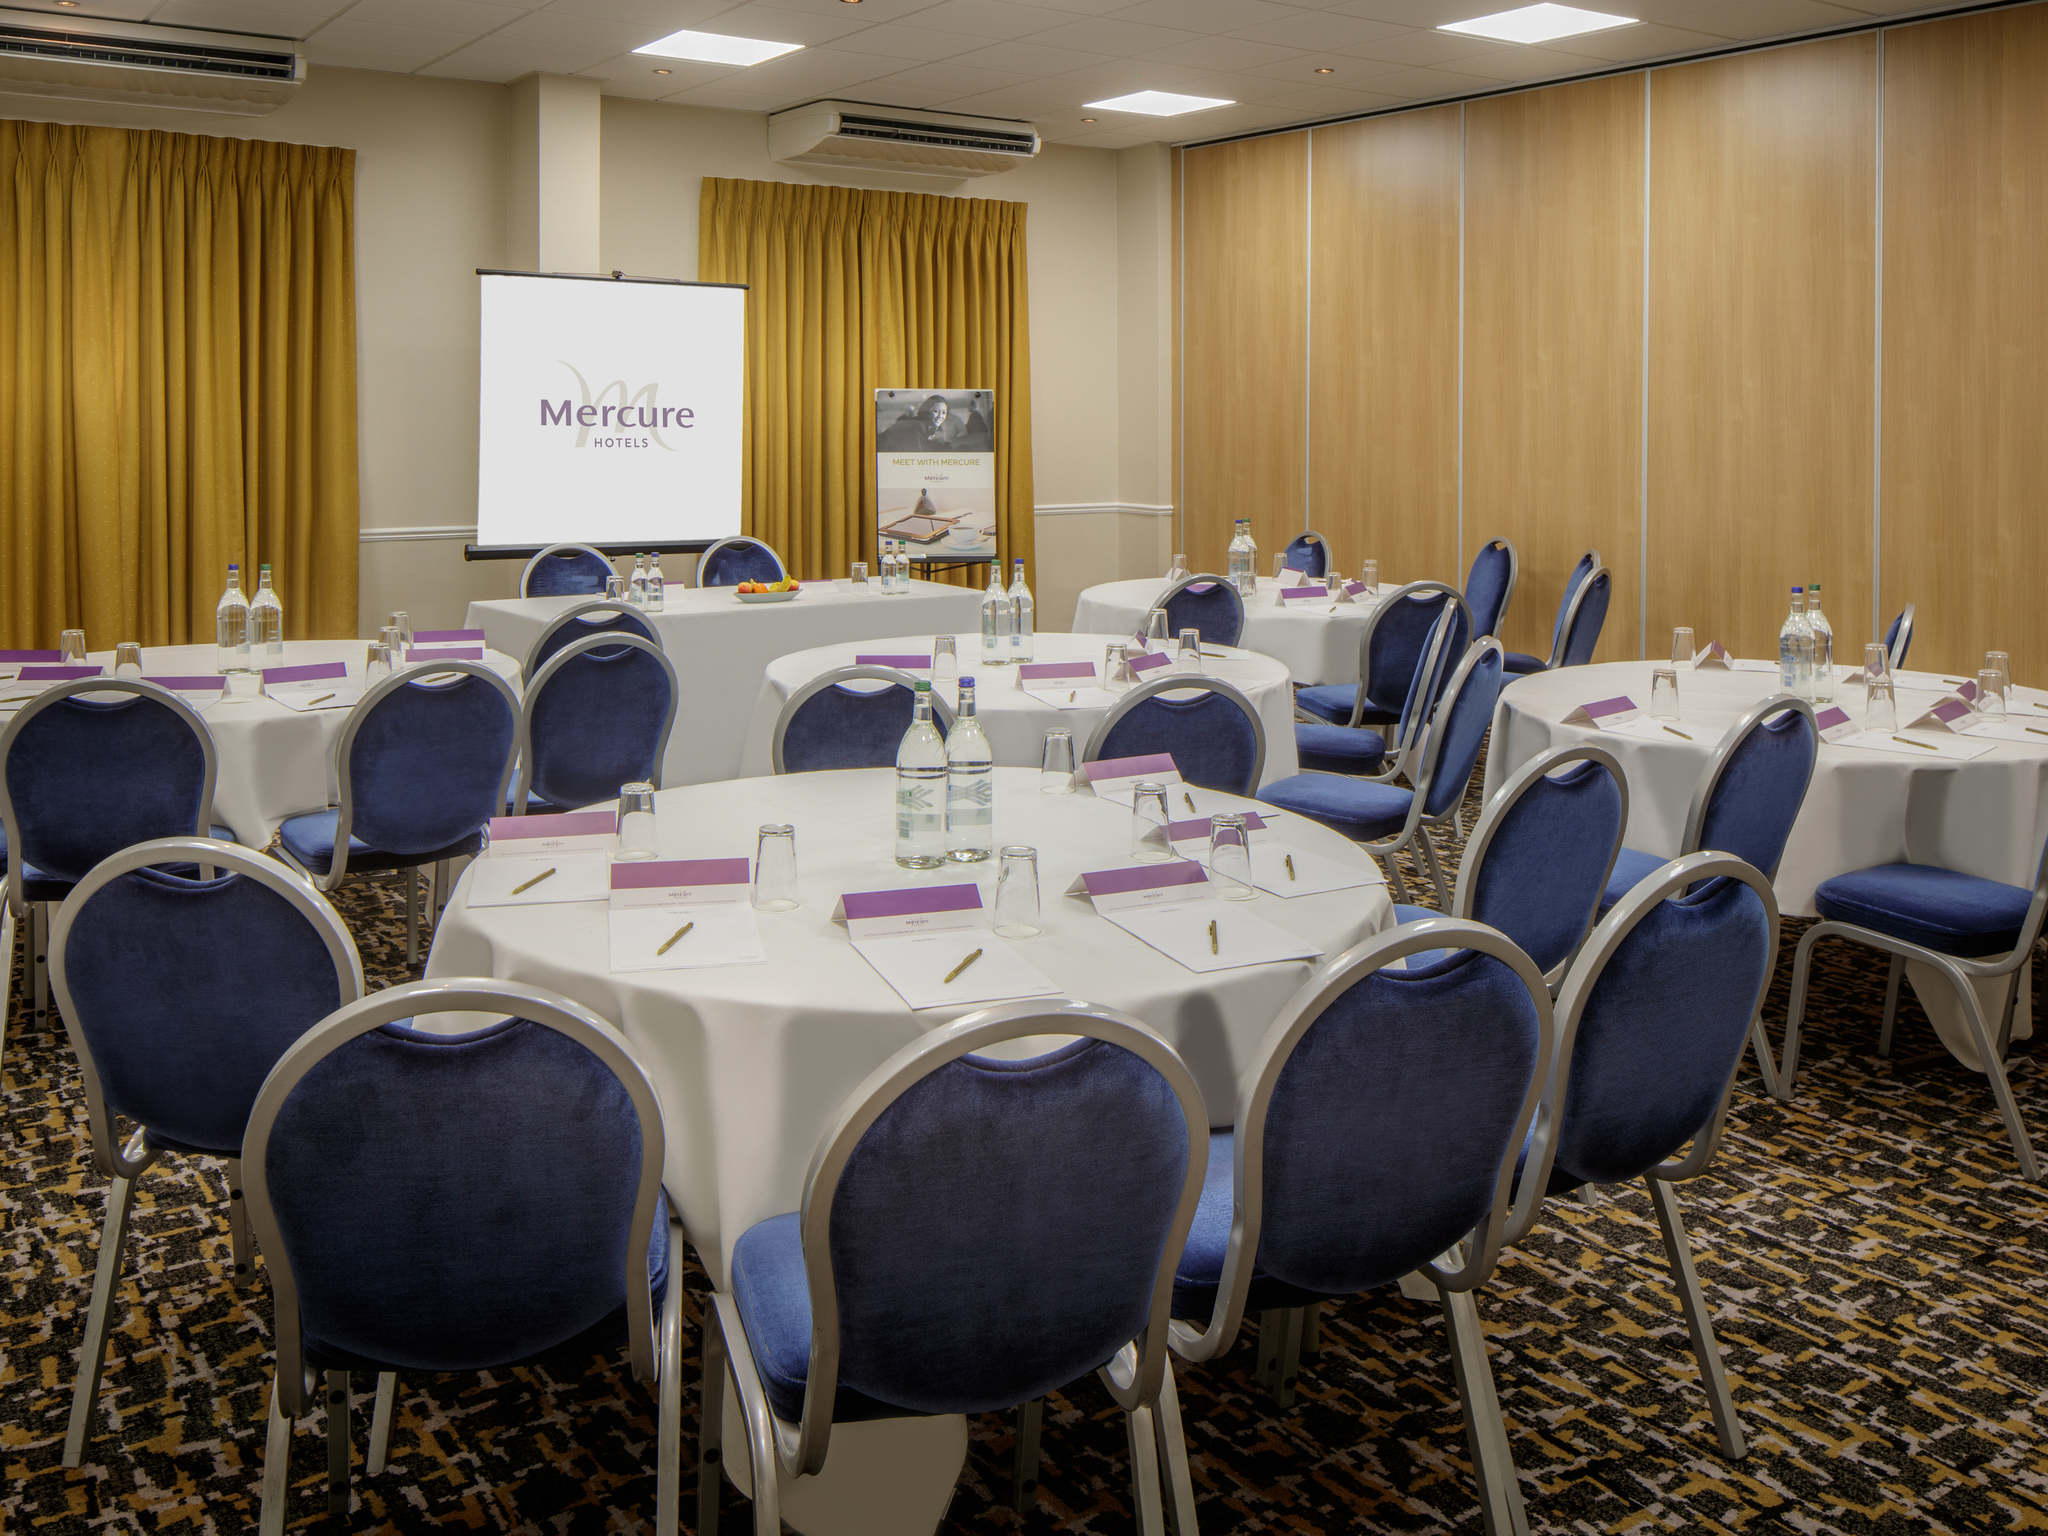 small wedding hotels london%0A     Meetings and events  Mercure Hatfield Oak Hotel